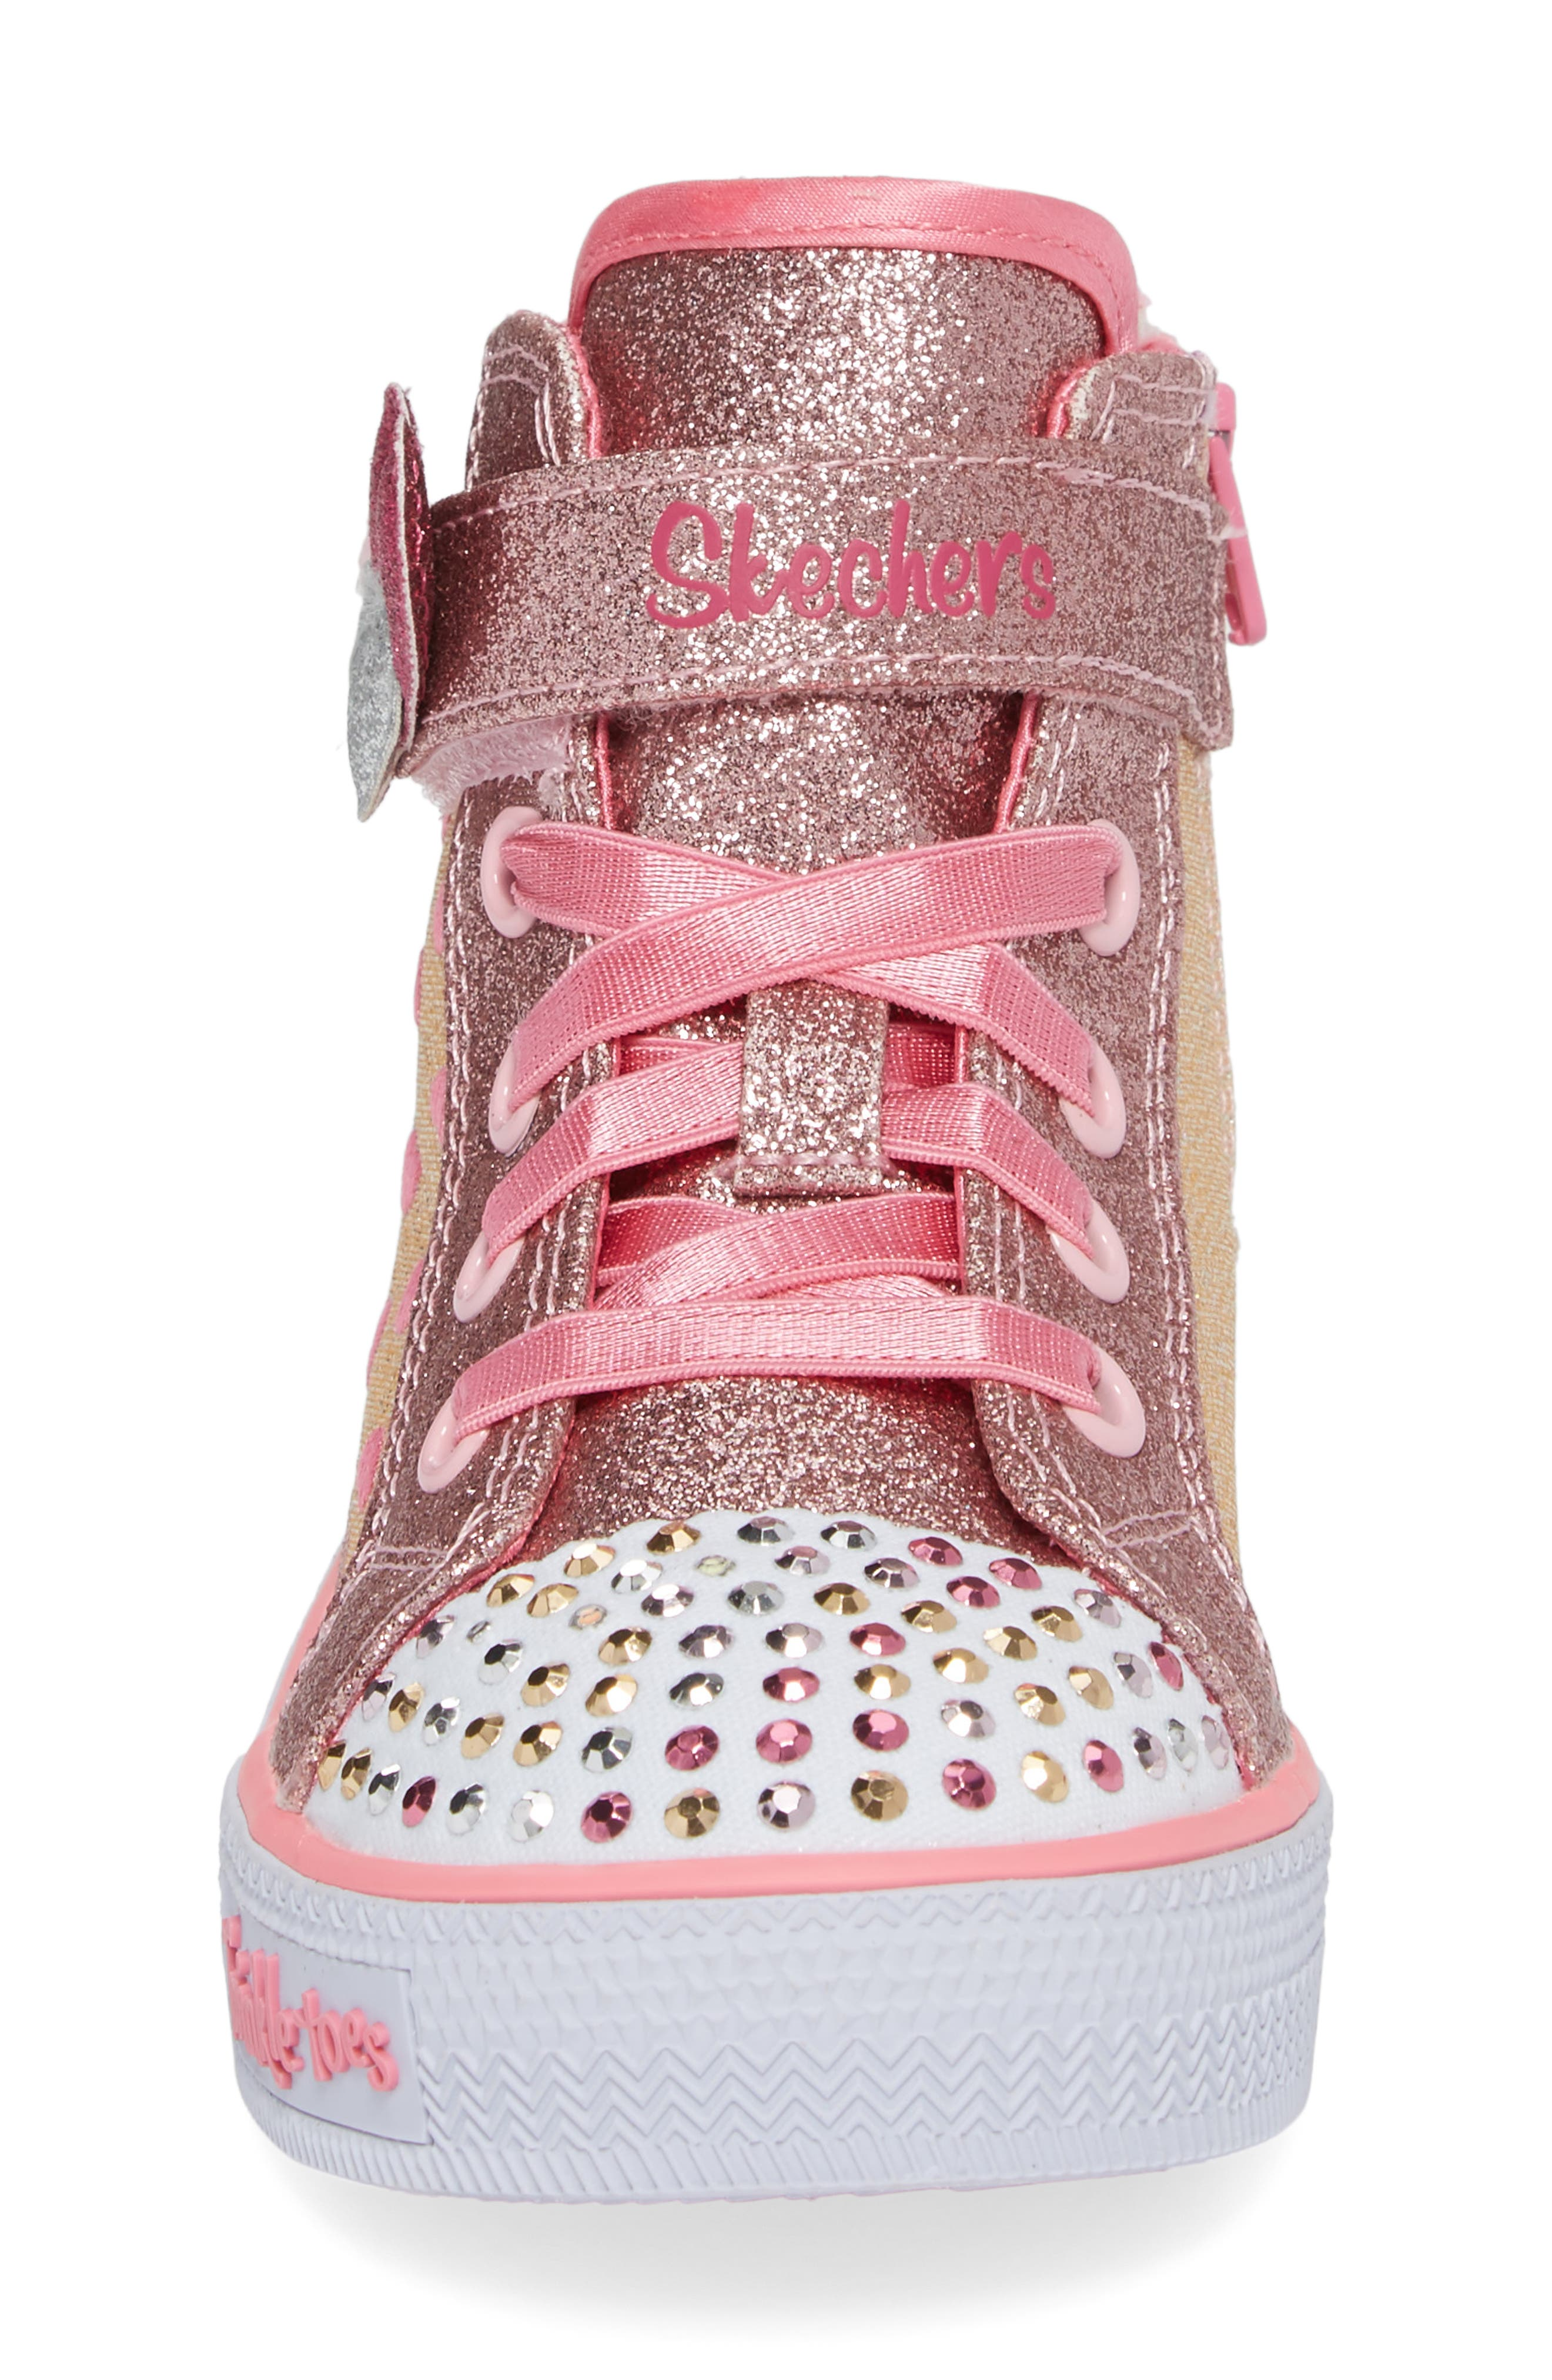 Twinkle Toes - Shuffles High Top Sneaker,                             Alternate thumbnail 4, color,                             225